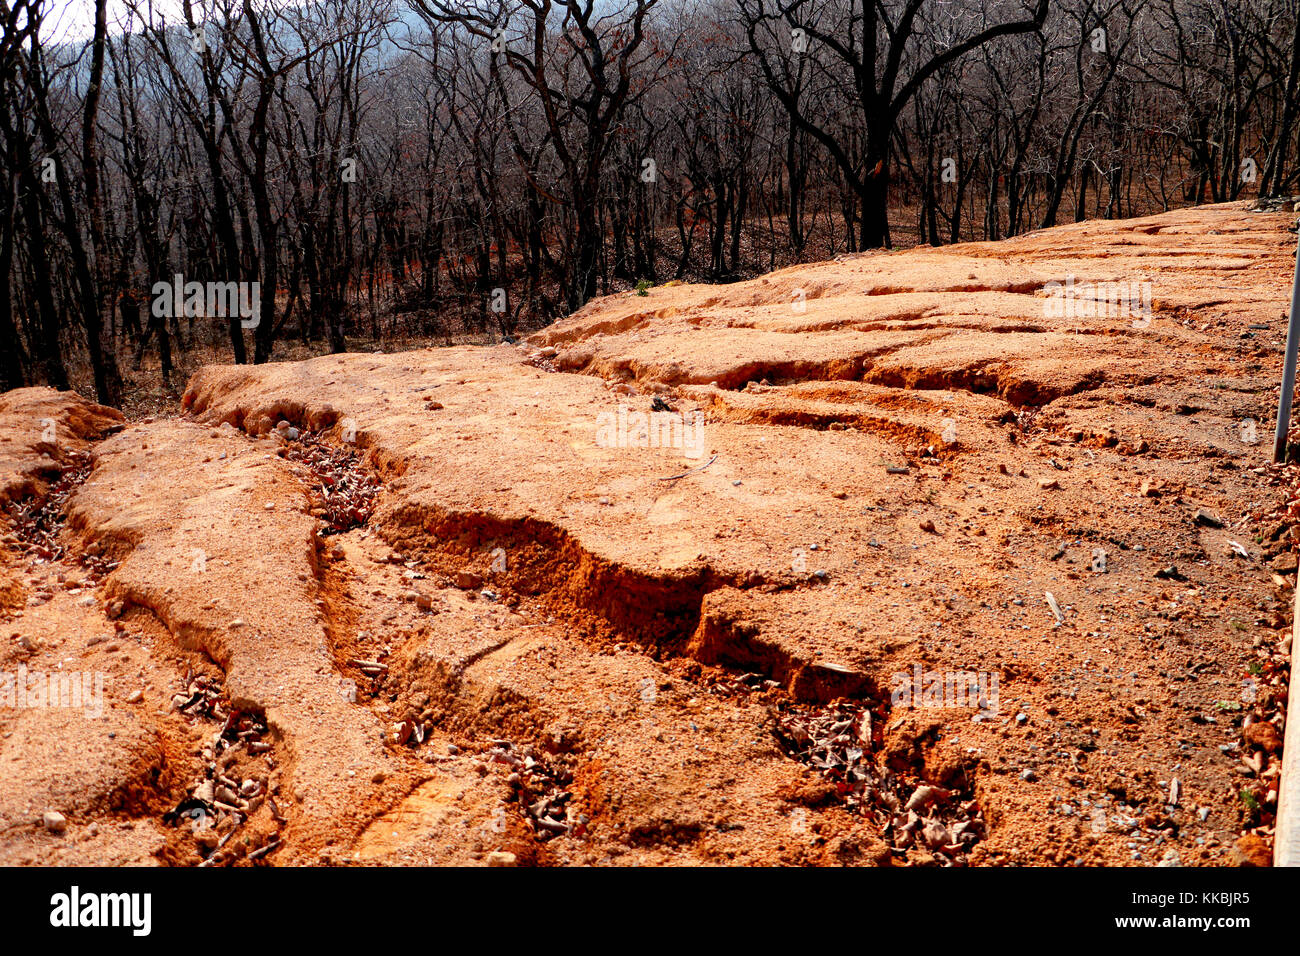 how to stop soil erosion on a slope